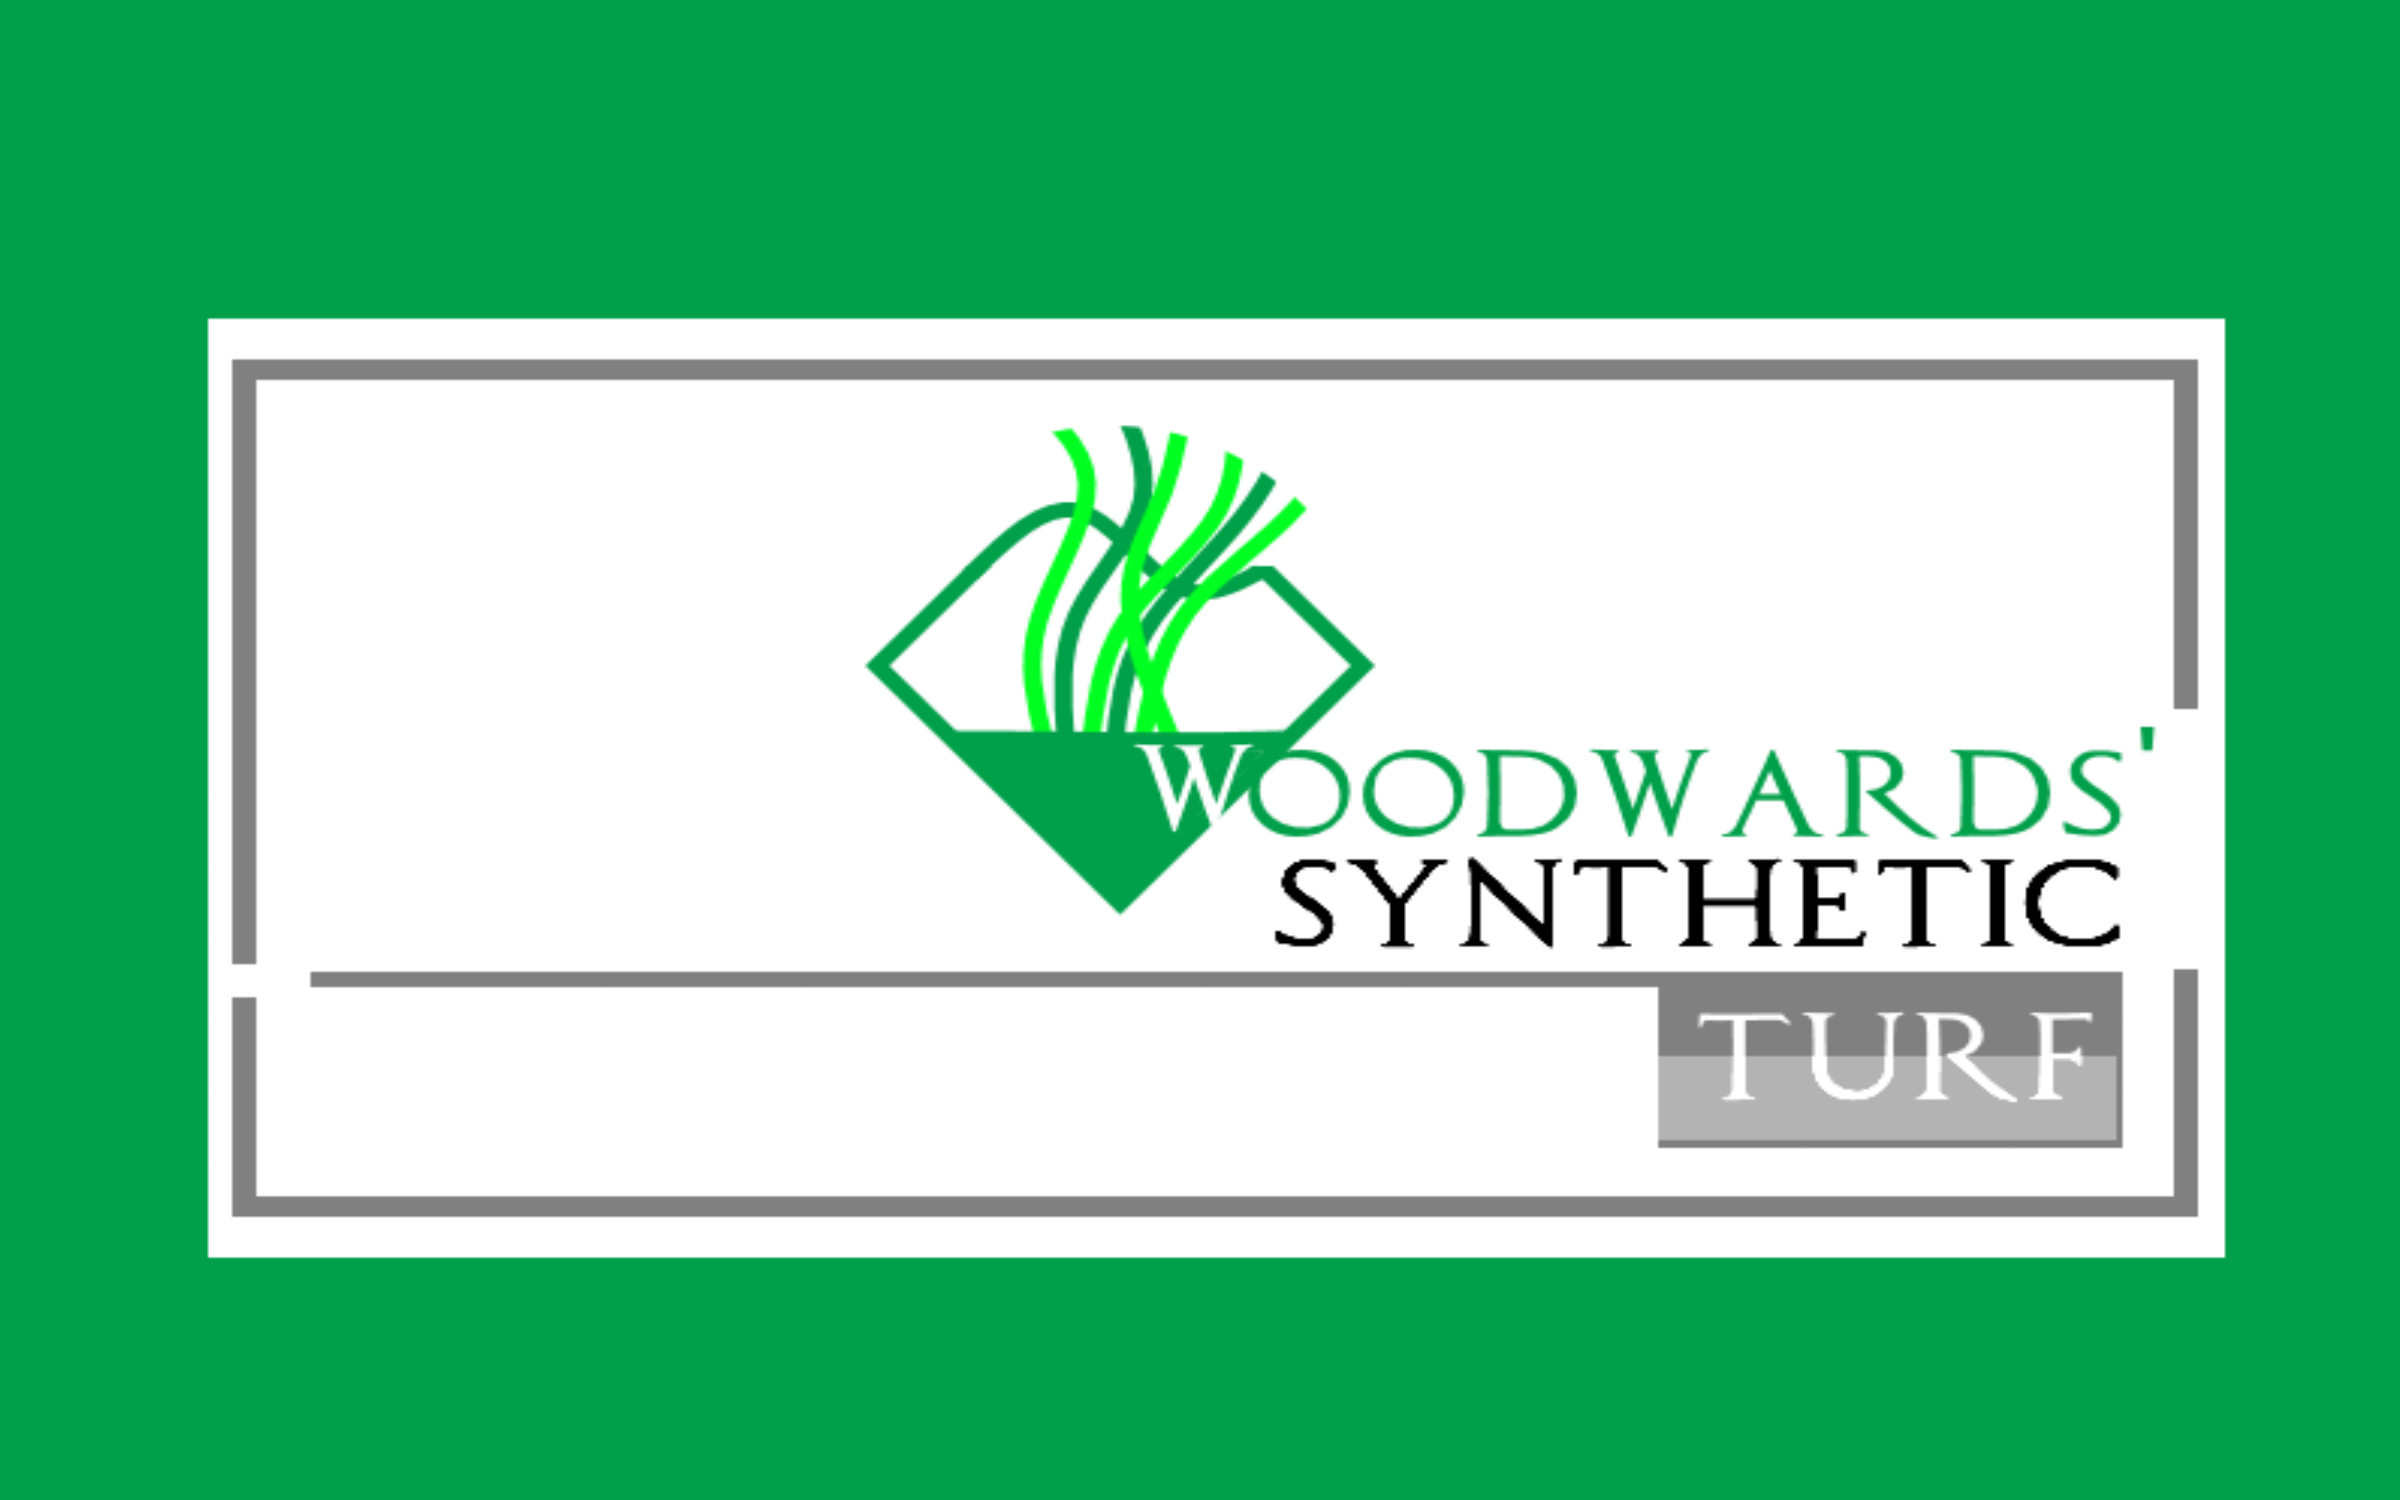 Logo Design by Roberto Bassi - Entry No. 42 in the Logo Design Contest Artistic Logo Design for Woodward's Synthetic Turf.